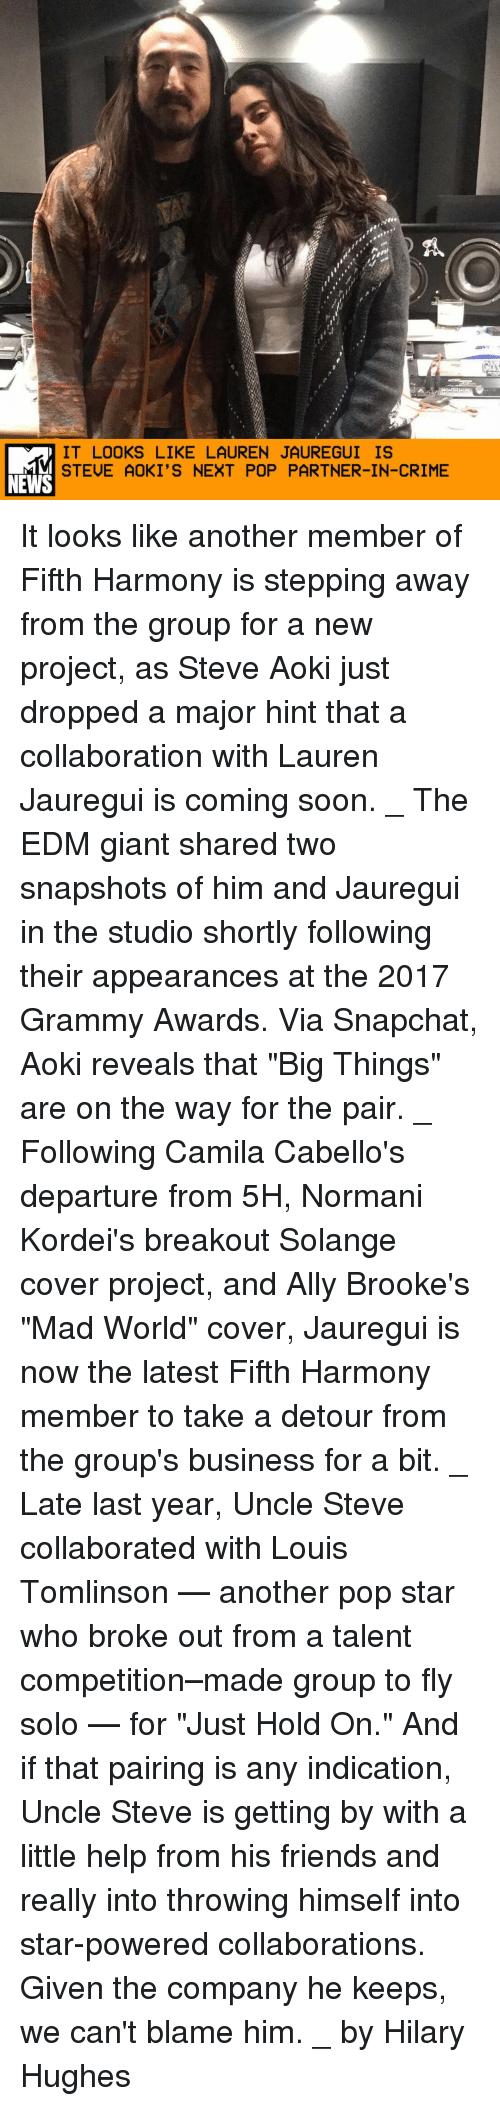 "Grammy Awards: IT LOOKS LIKE LAUREN JAUREGUI IS  STEUE AOKI'S NEXT POP PARTNER-IN-CRIME  NEWS It looks like another member of Fifth Harmony is stepping away from the group for a new project, as Steve Aoki just dropped a major hint that a collaboration with Lauren Jauregui is coming soon. _ The EDM giant shared two snapshots of him and Jauregui in the studio shortly following their appearances at the 2017 Grammy Awards. Via Snapchat, Aoki reveals that ""Big Things"" are on the way for the pair. _ Following Camila Cabello's departure from 5H, Normani Kordei's breakout Solange cover project, and Ally Brooke's ""Mad World"" cover, Jauregui is now the latest Fifth Harmony member to take a detour from the group's business for a bit. _ Late last year, Uncle Steve collaborated with Louis Tomlinson — another pop star who broke out from a talent competition–made group to fly solo — for ""Just Hold On."" And if that pairing is any indication, Uncle Steve is getting by with a little help from his friends and really into throwing himself into star-powered collaborations. Given the company he keeps, we can't blame him. _ by Hilary Hughes"